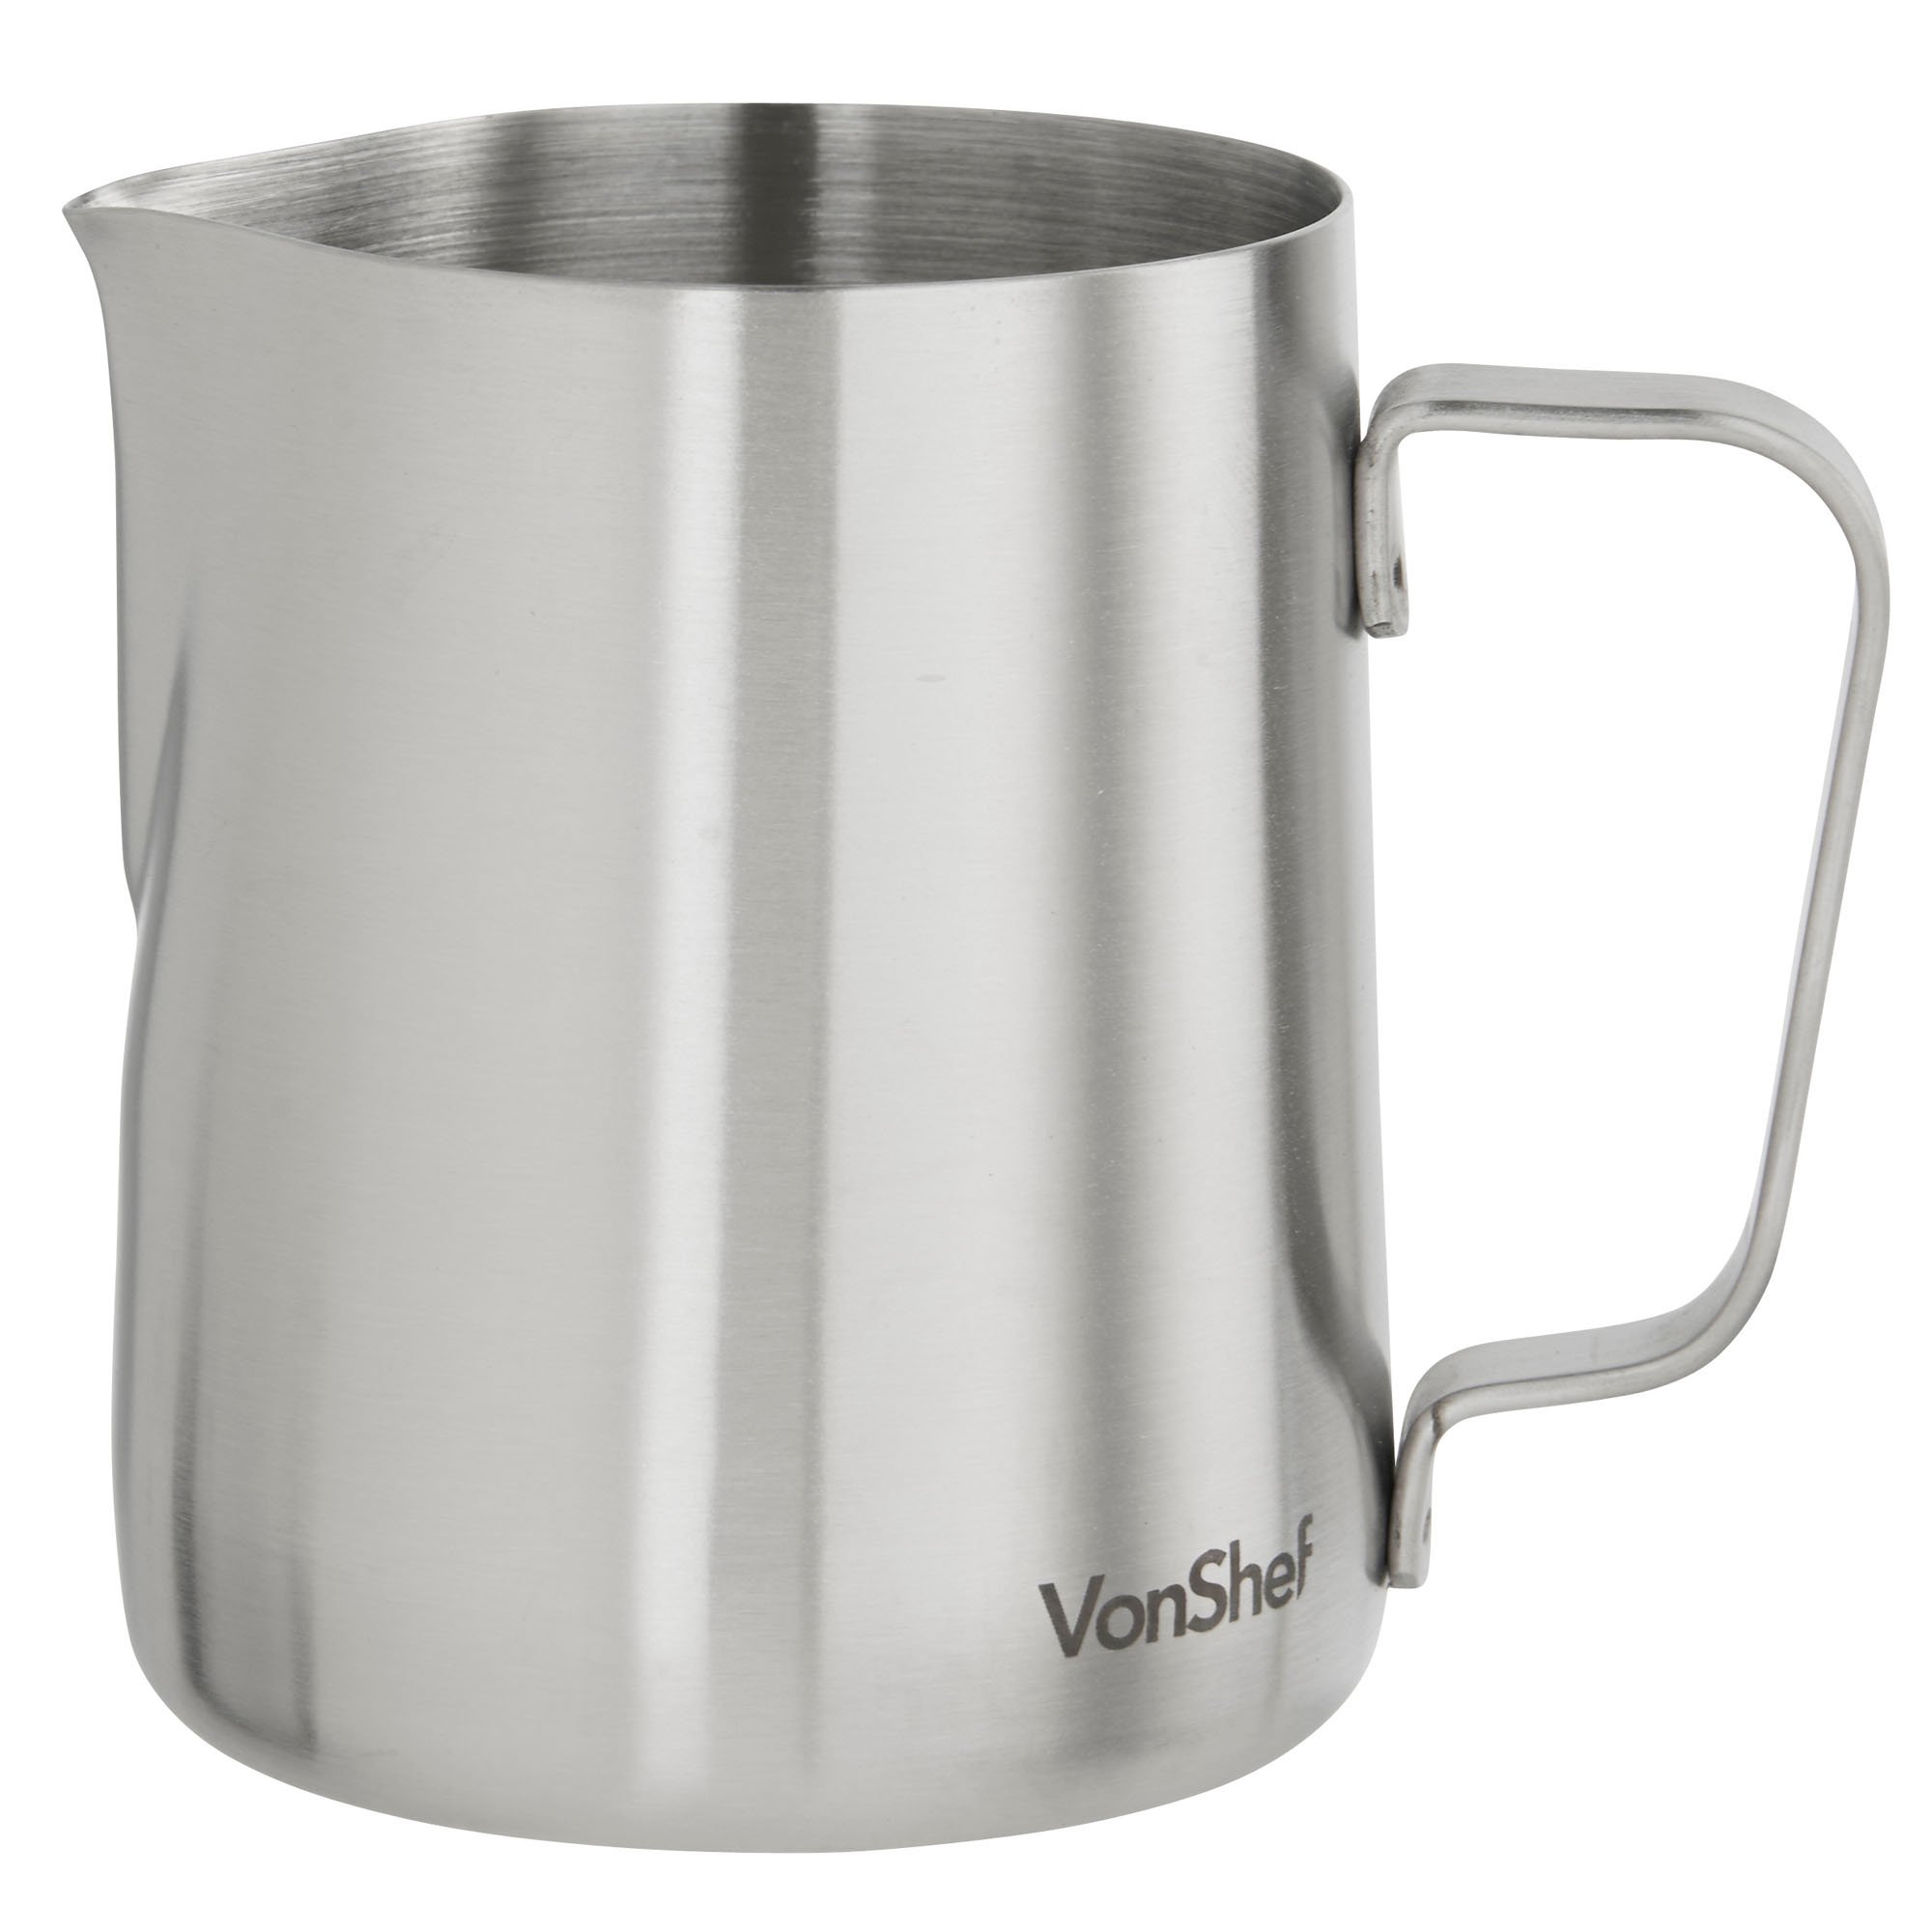 Buy VonShef 20 Ounce Milk Frothing Pitcher Jug, Stainless